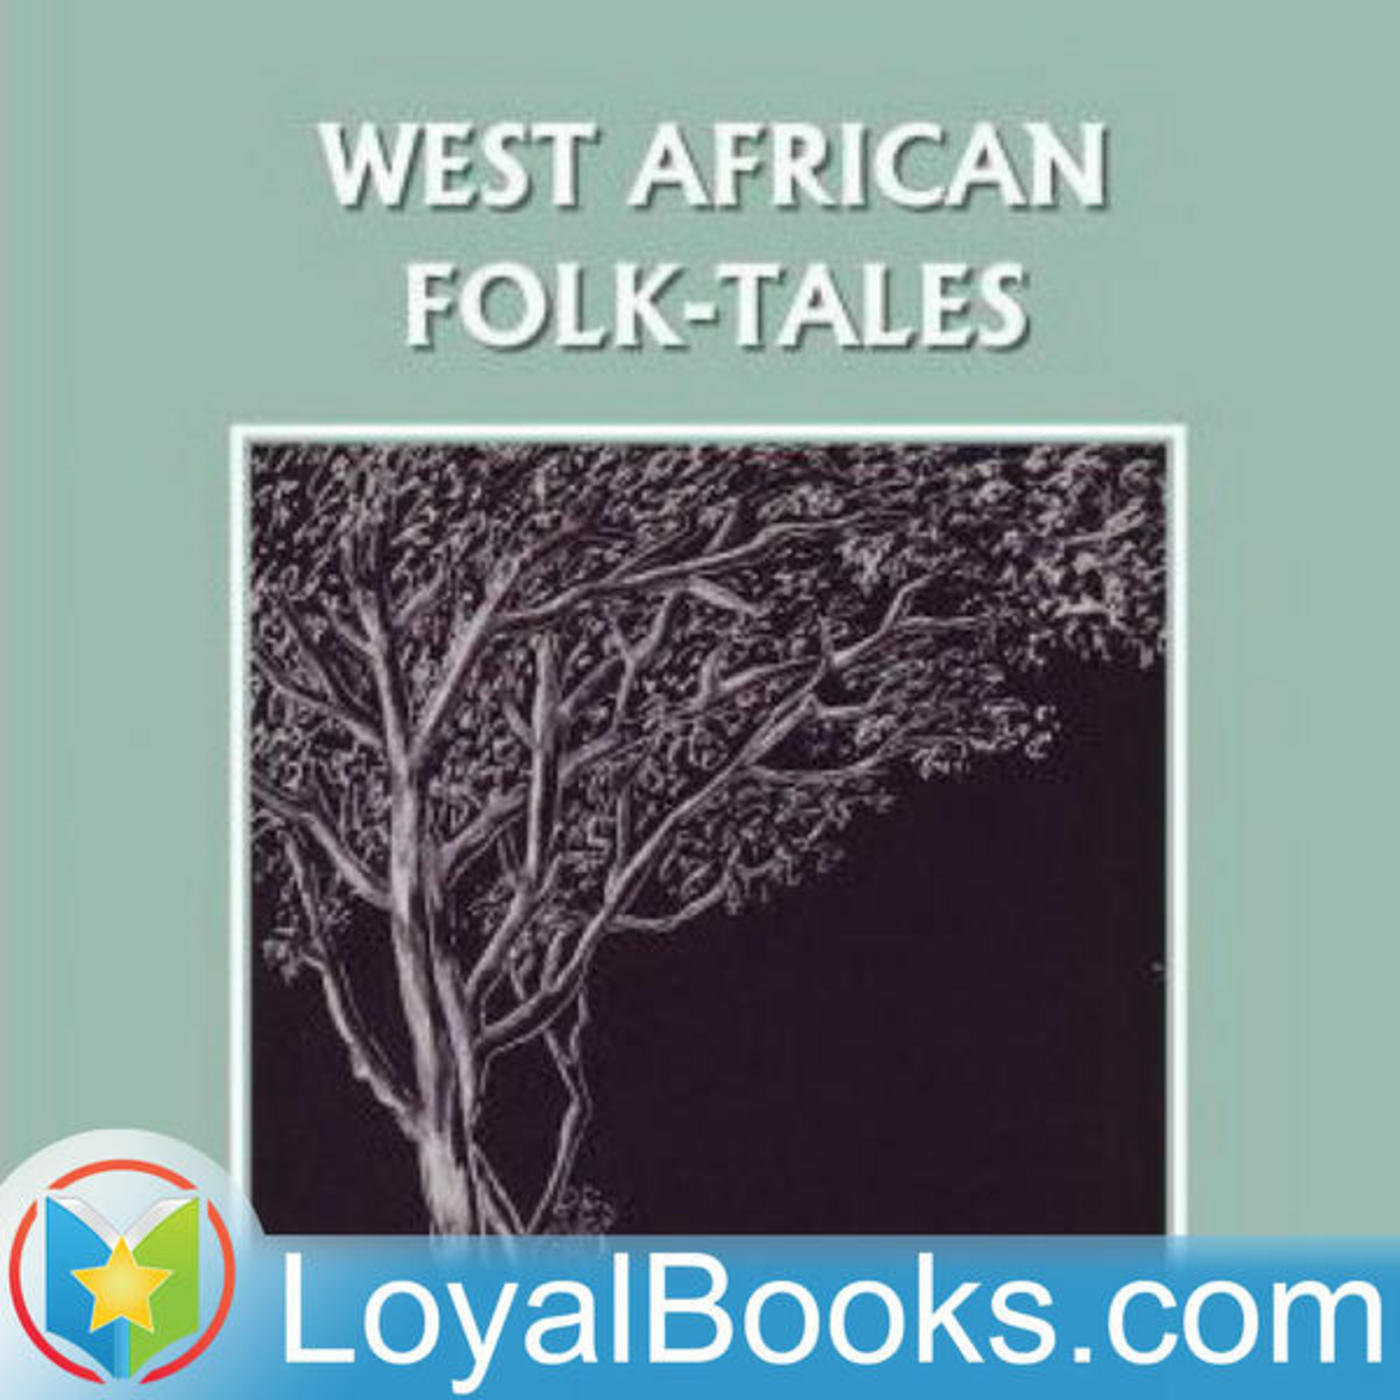 african folk tales This exciting collection of traditional african folk tales introduces you to a host of interesting people and unusual animals eighteen authentic fables, recorded as they were told by tribal members of nigerian and other cultures, range from the imaginative story of a farmer and four hyenas to an.